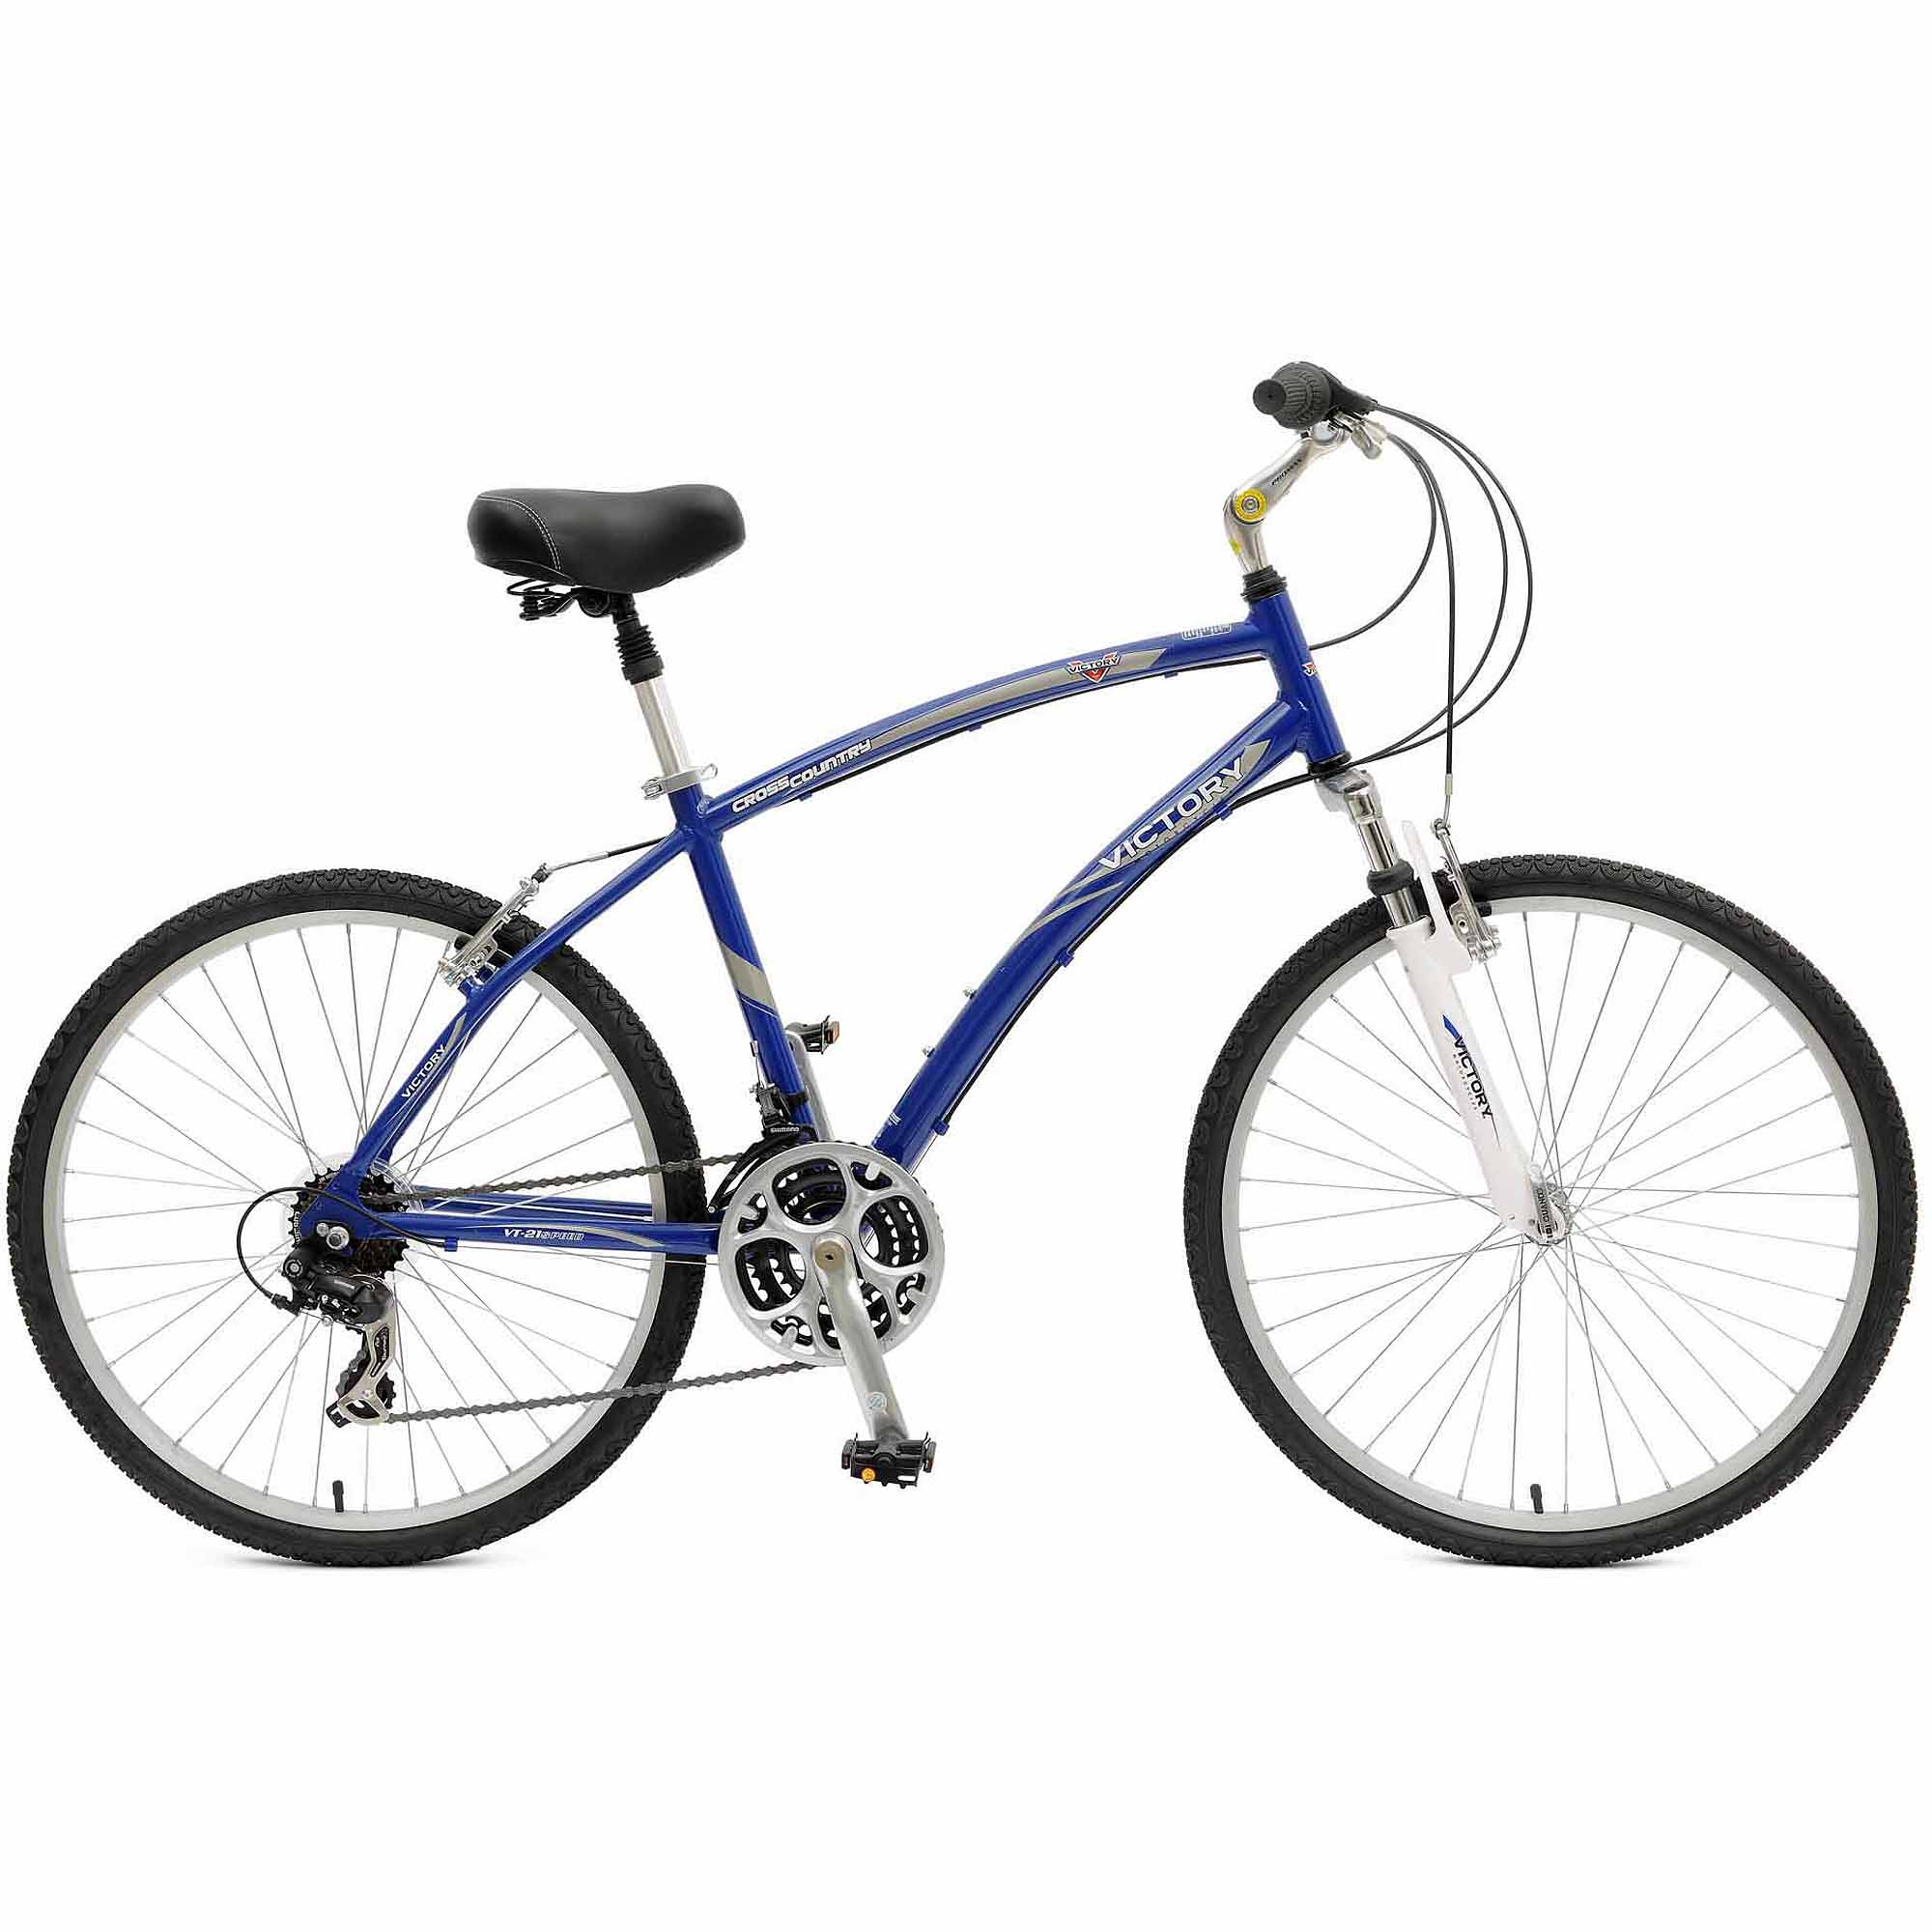 p full isoshallow contact us bike gigabike complete big pricing for series bikes cycles comforter suspension bicycles zinn and mountain frame tall comfort